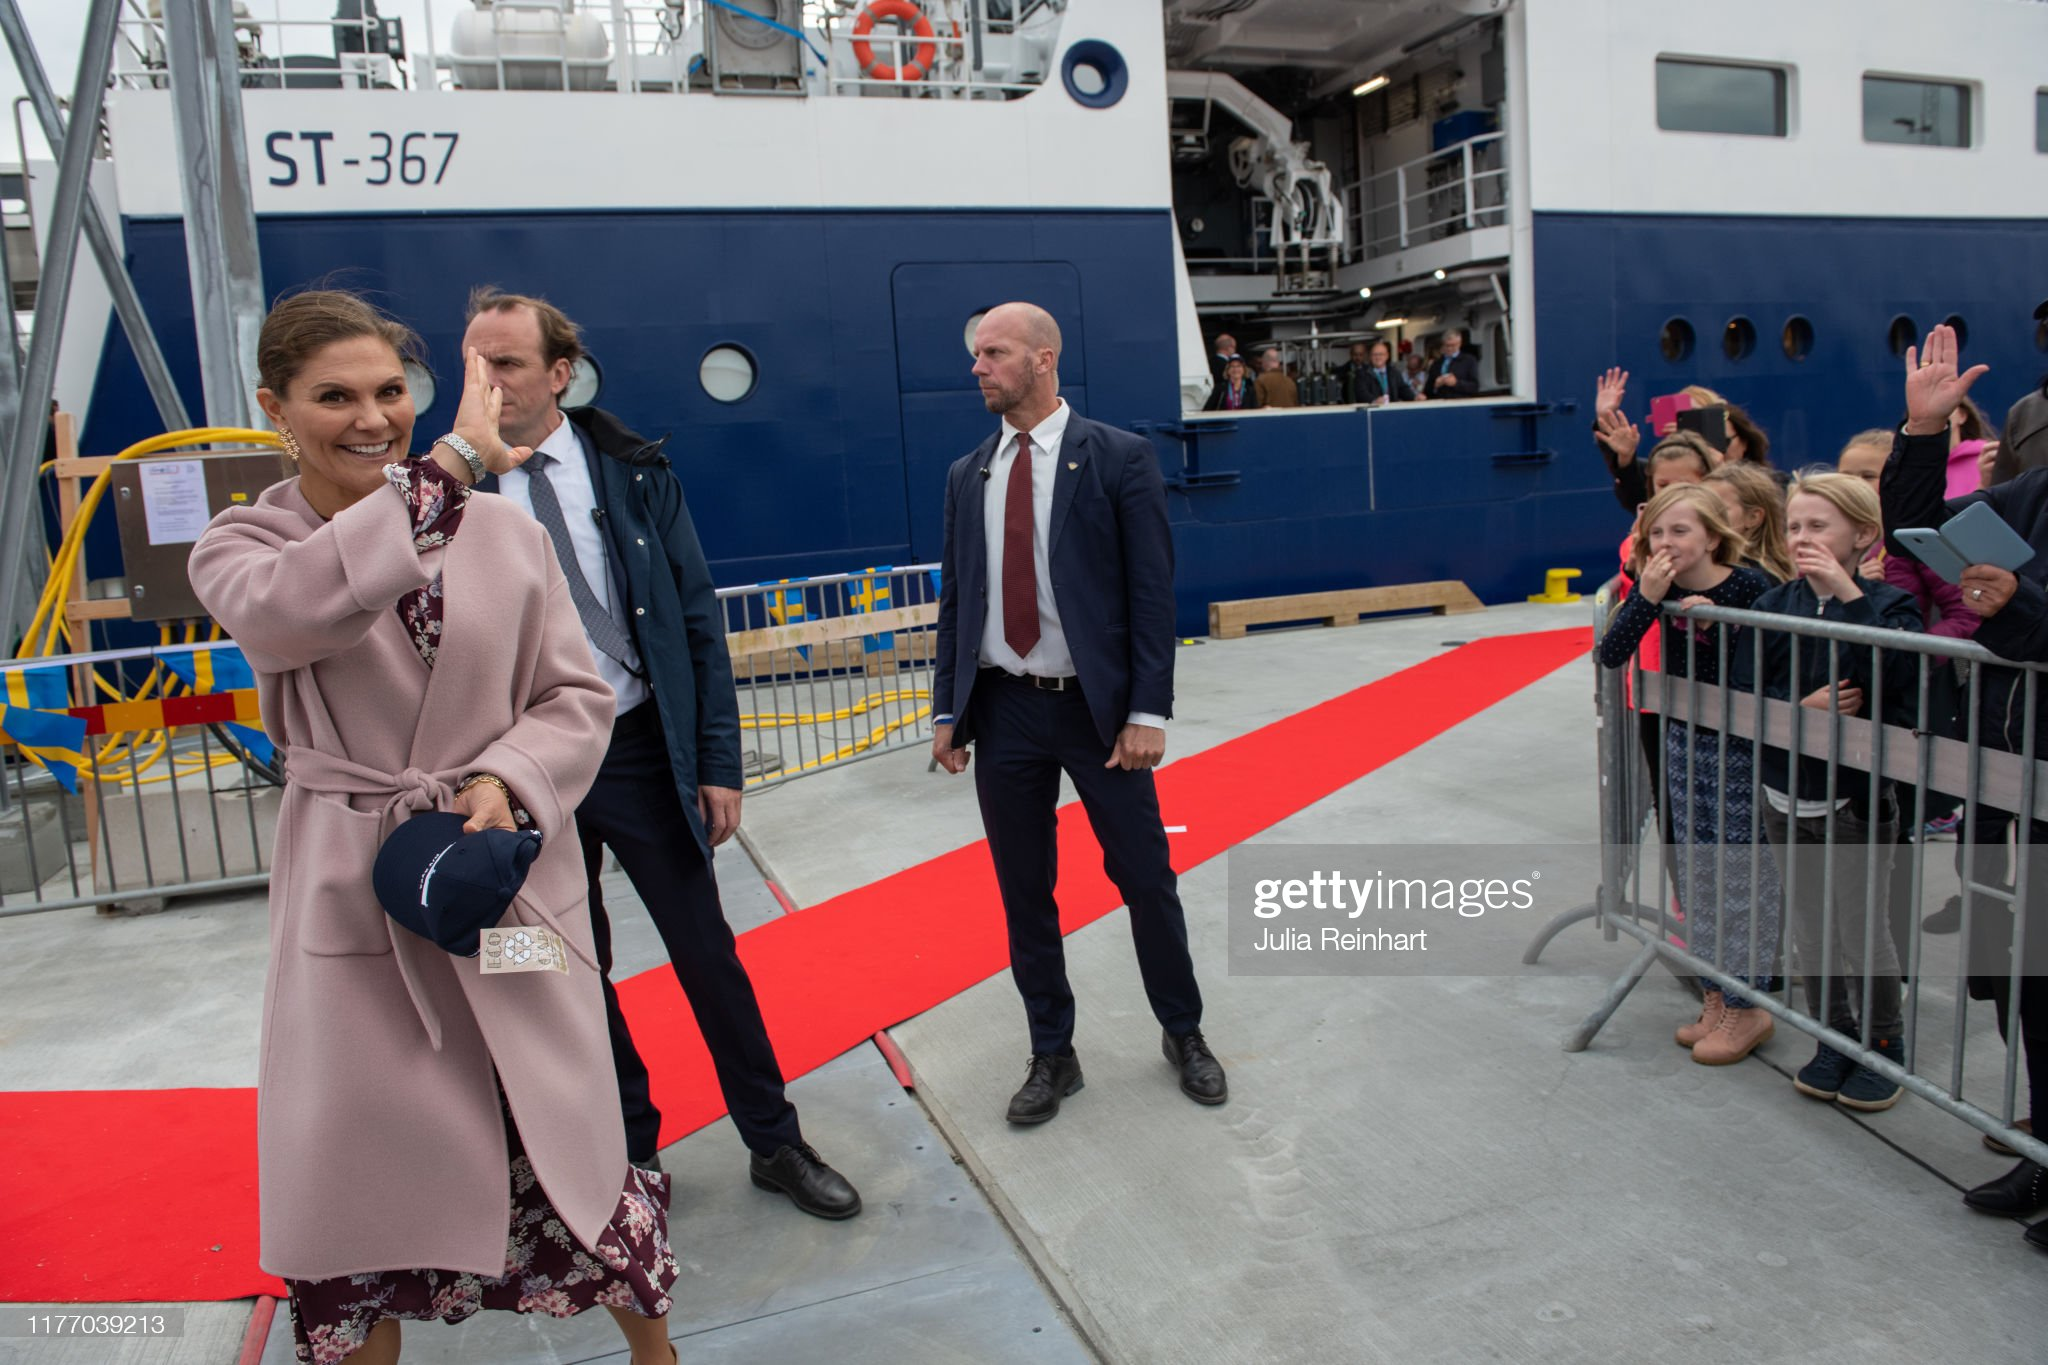 crown-princess-victoria-waves-goodbye-at-the-end-of-her-visit-of-the-picture-id1177039213